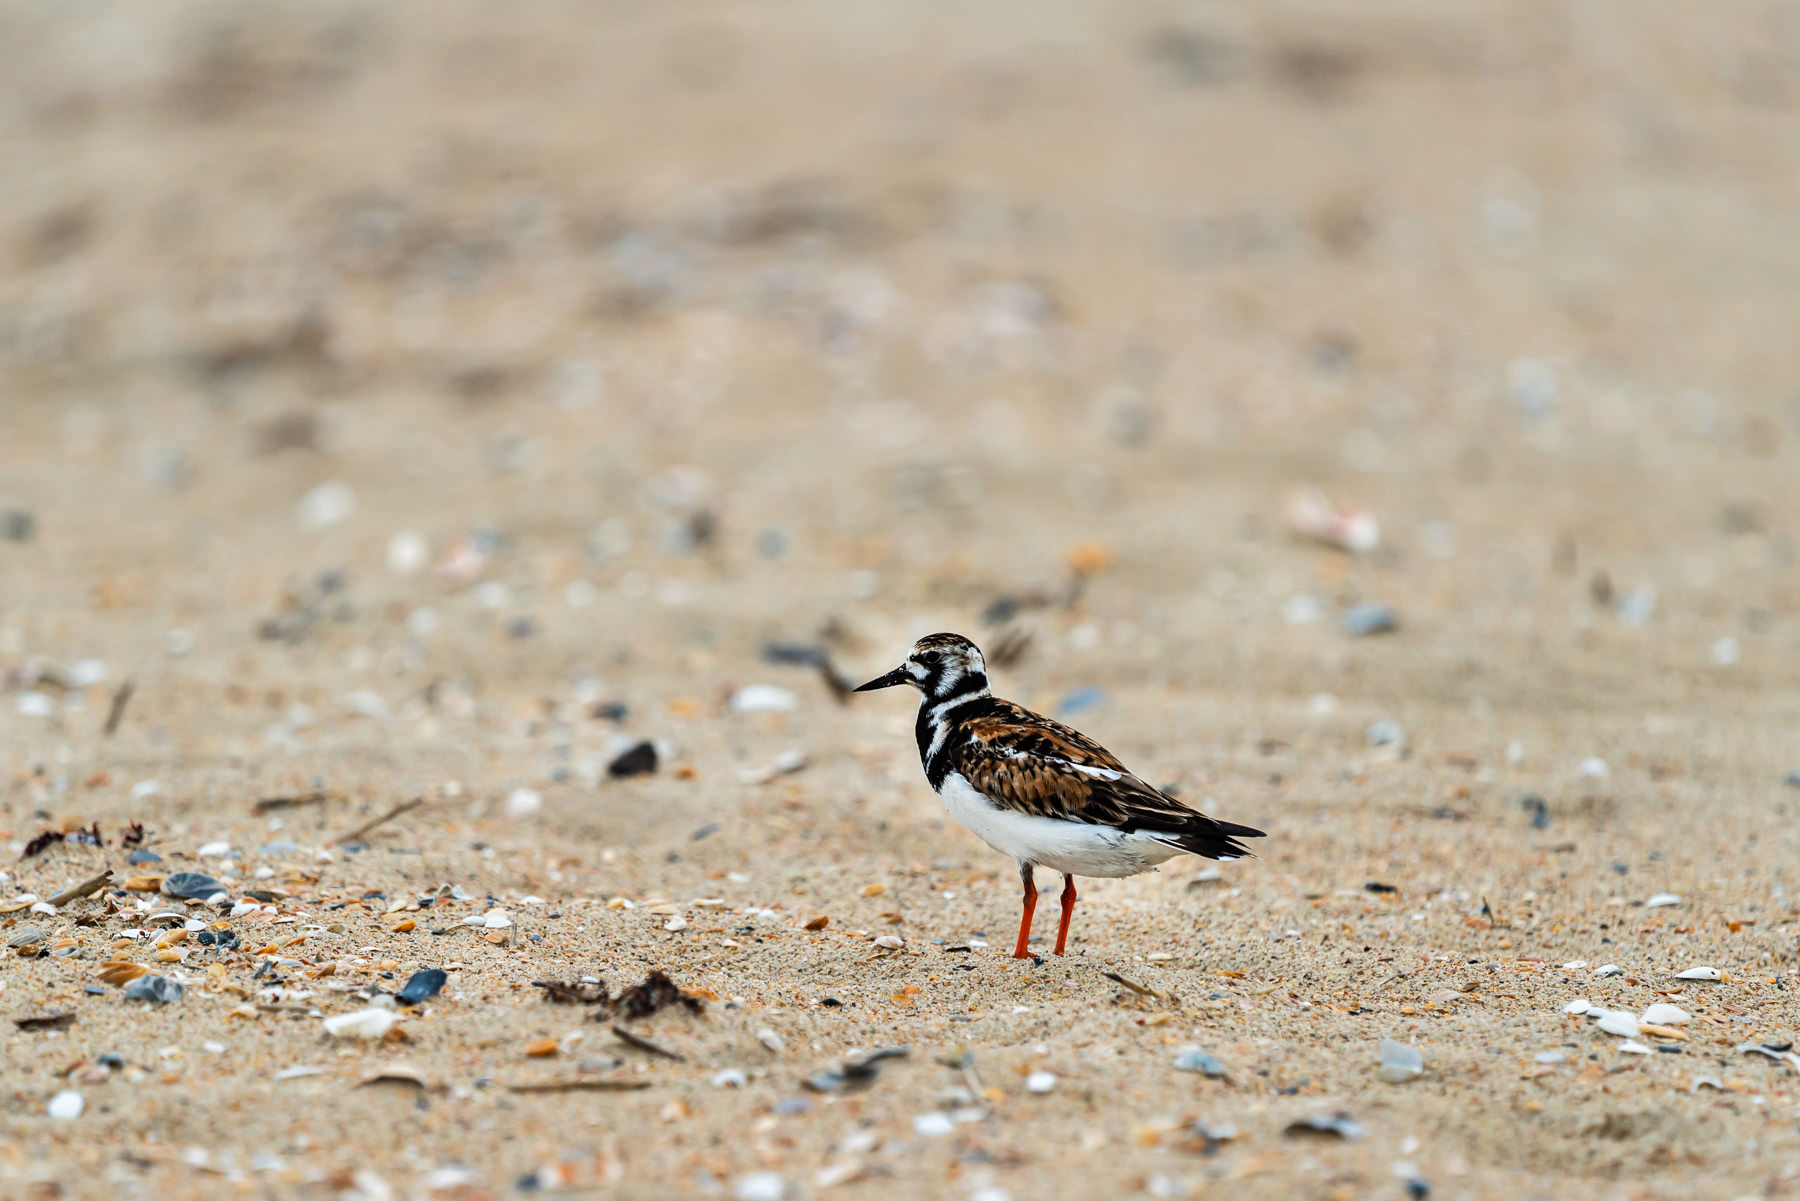 2018.05.30 Piping Plover © Jennifer Carr Photography.jpg